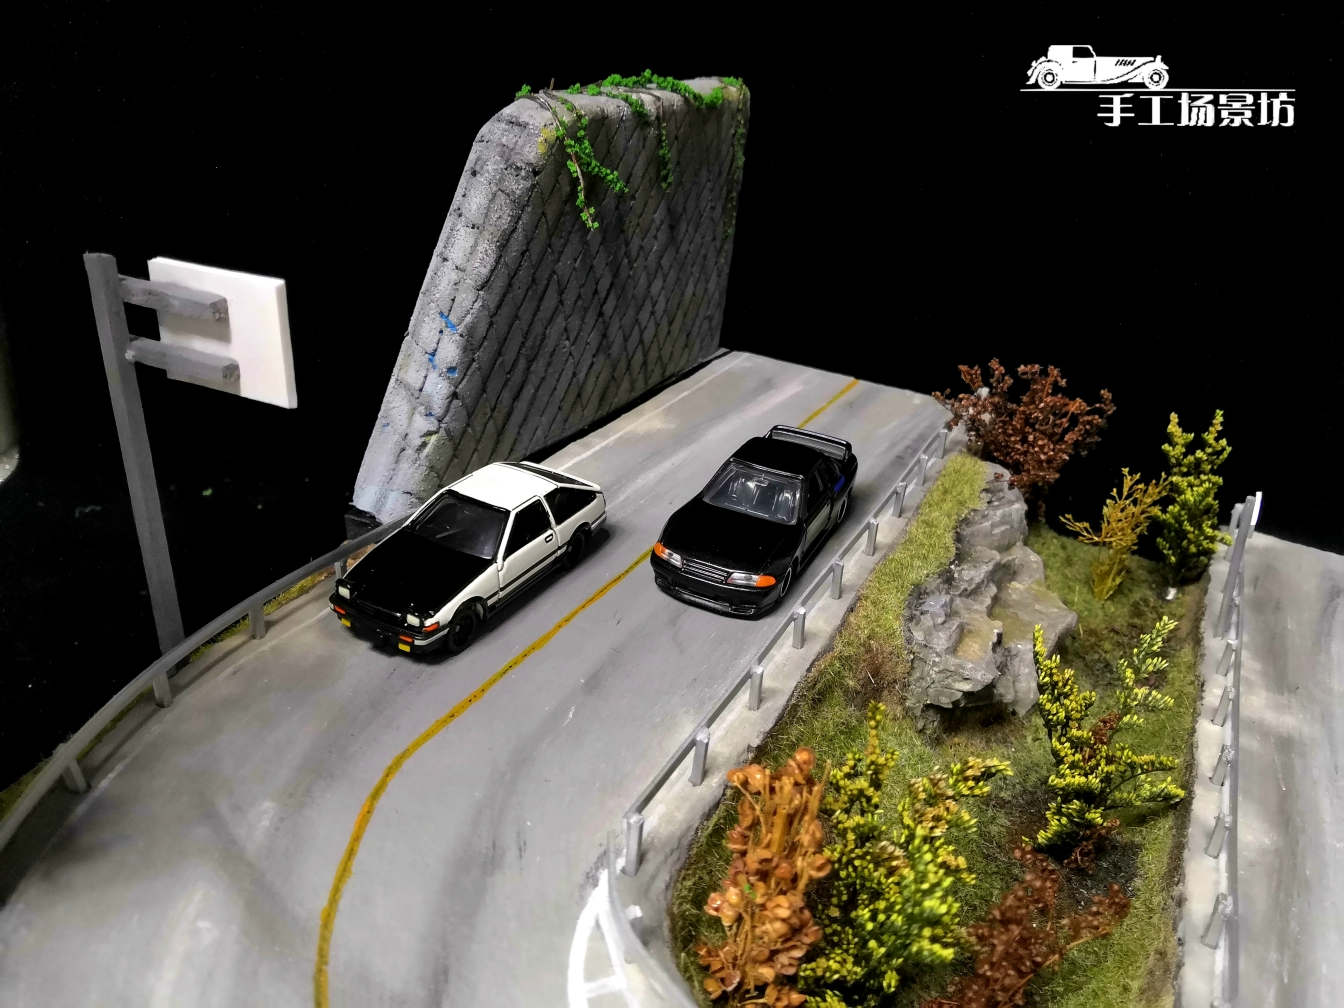 1:64 scale Diorama, Initial D Akina Mountain Racing scene. suitable for 1/64 scale Die-cast model car 1/64 matchbox cars, Hot Wheels, TOMICA cars, takumi cars.